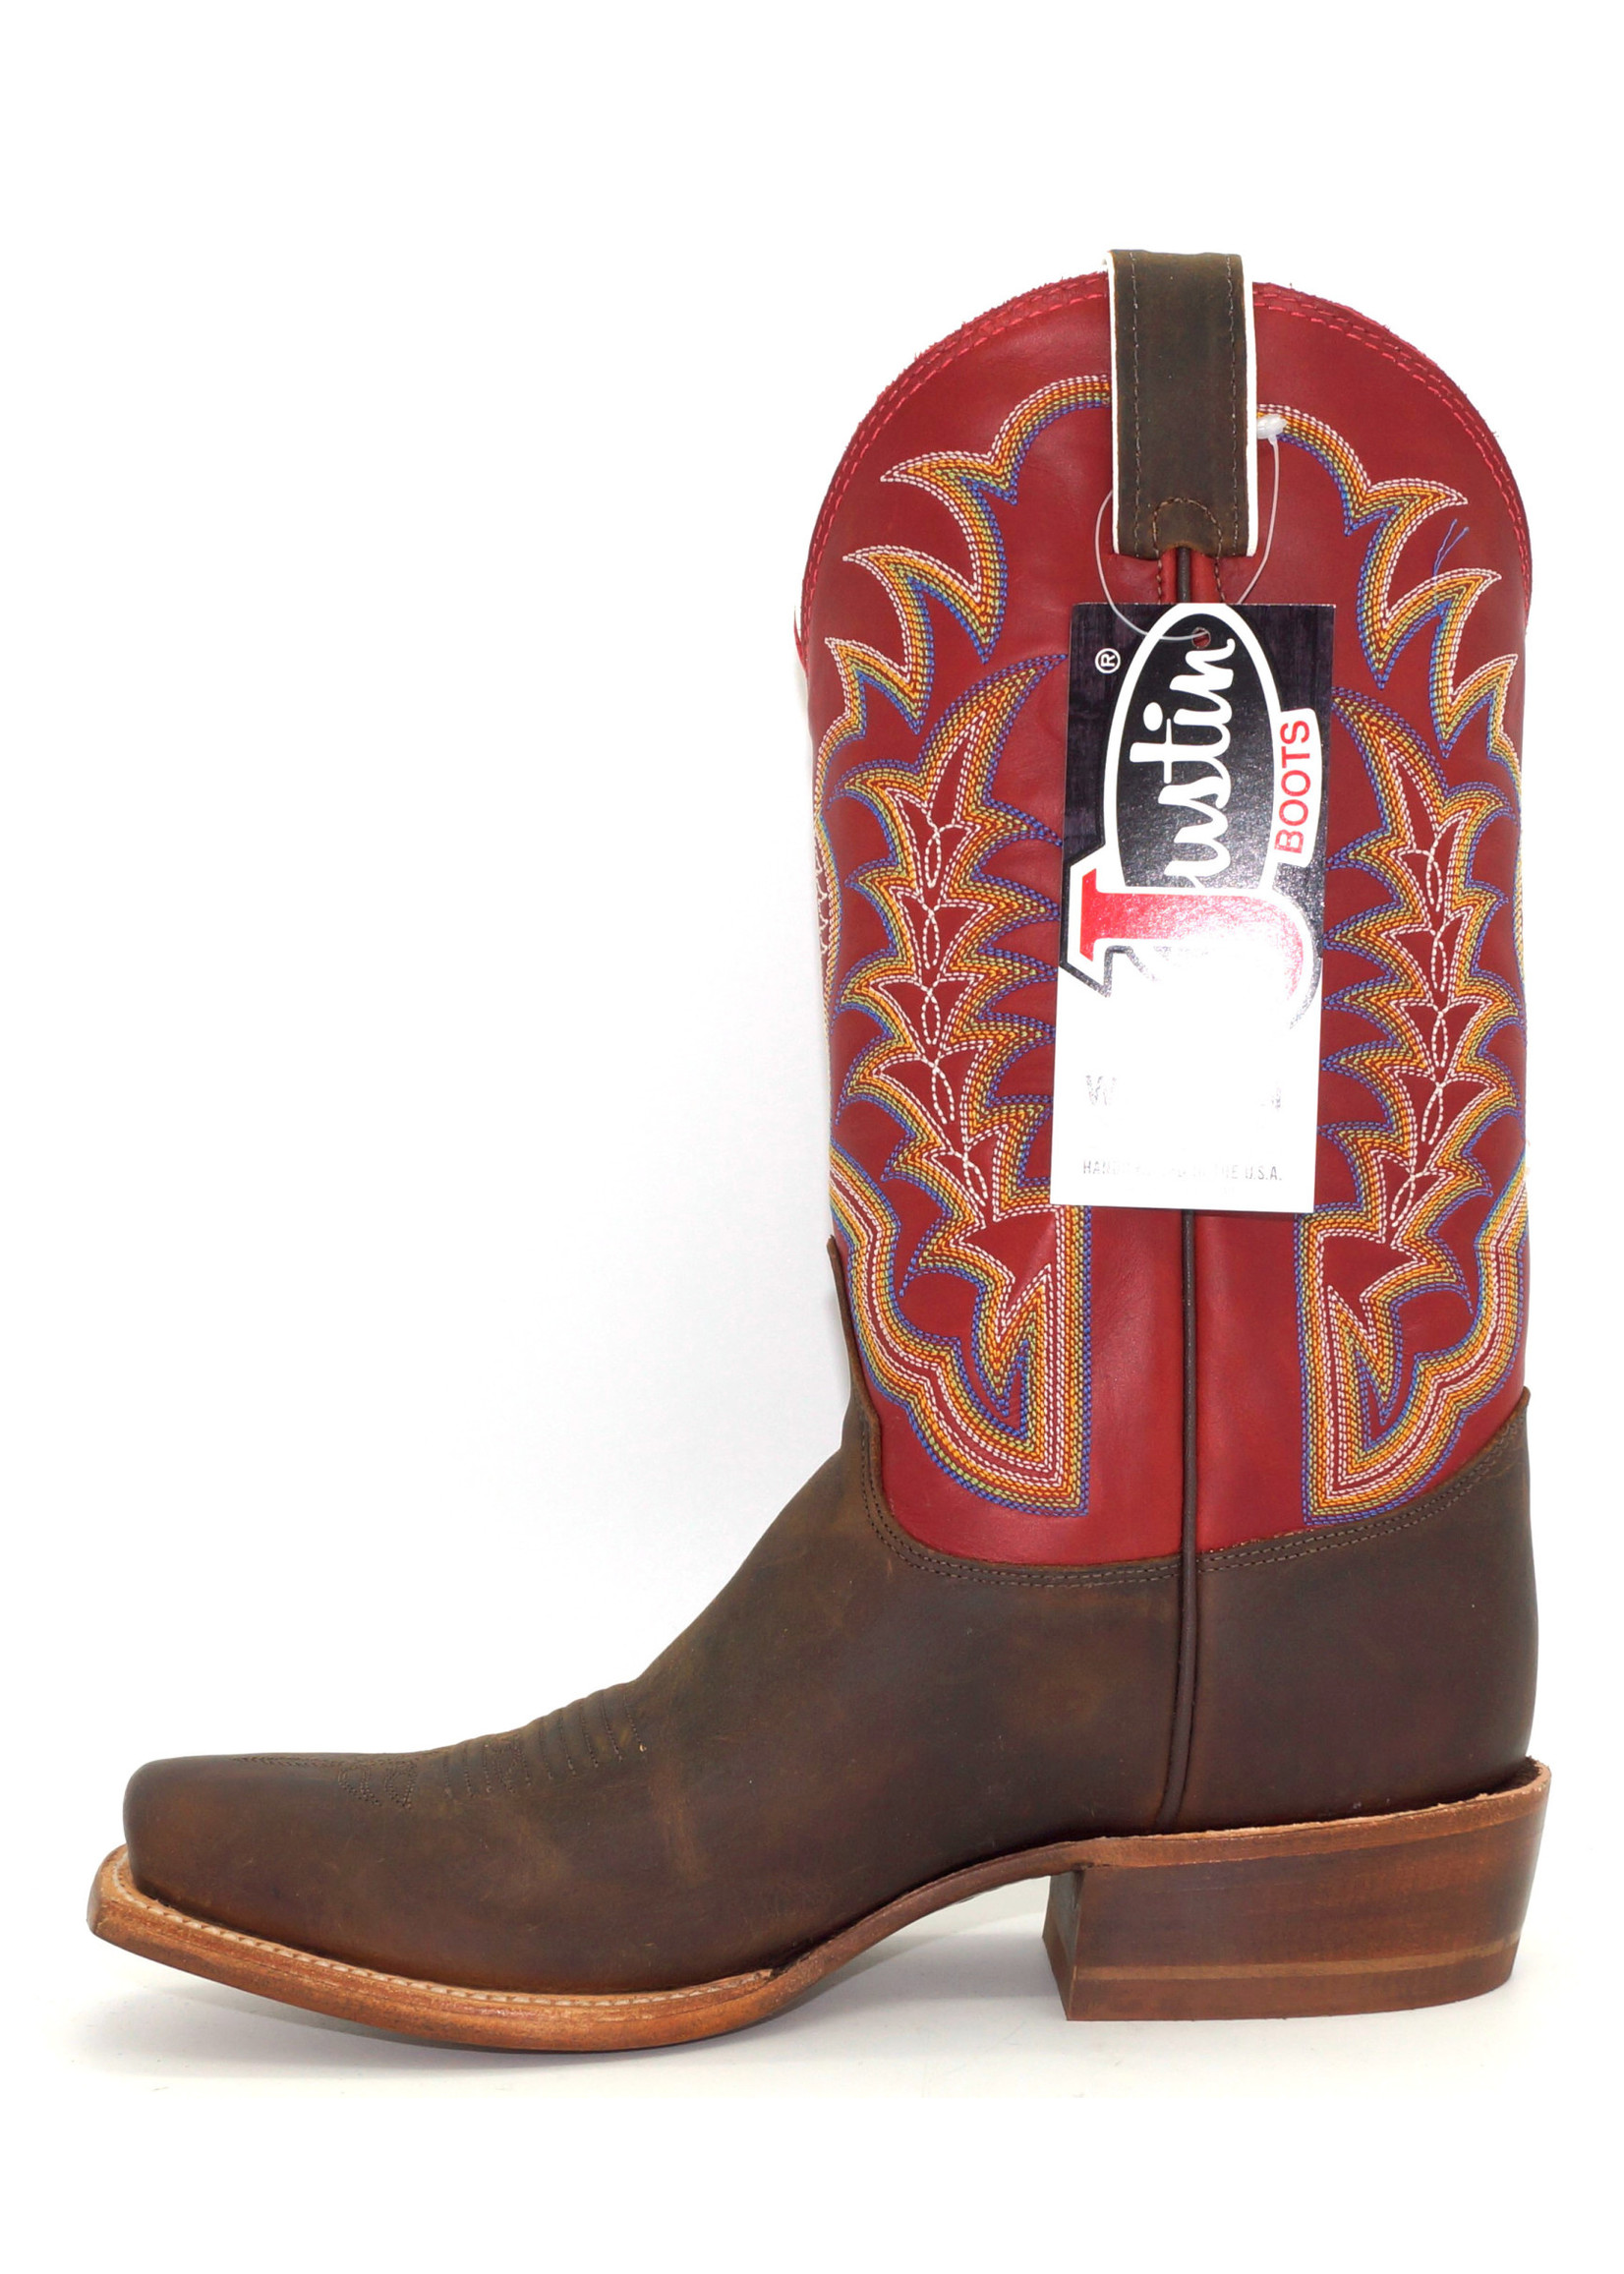 Justin Men's Coffee Road Red Pampero Square Toe Boot 2711